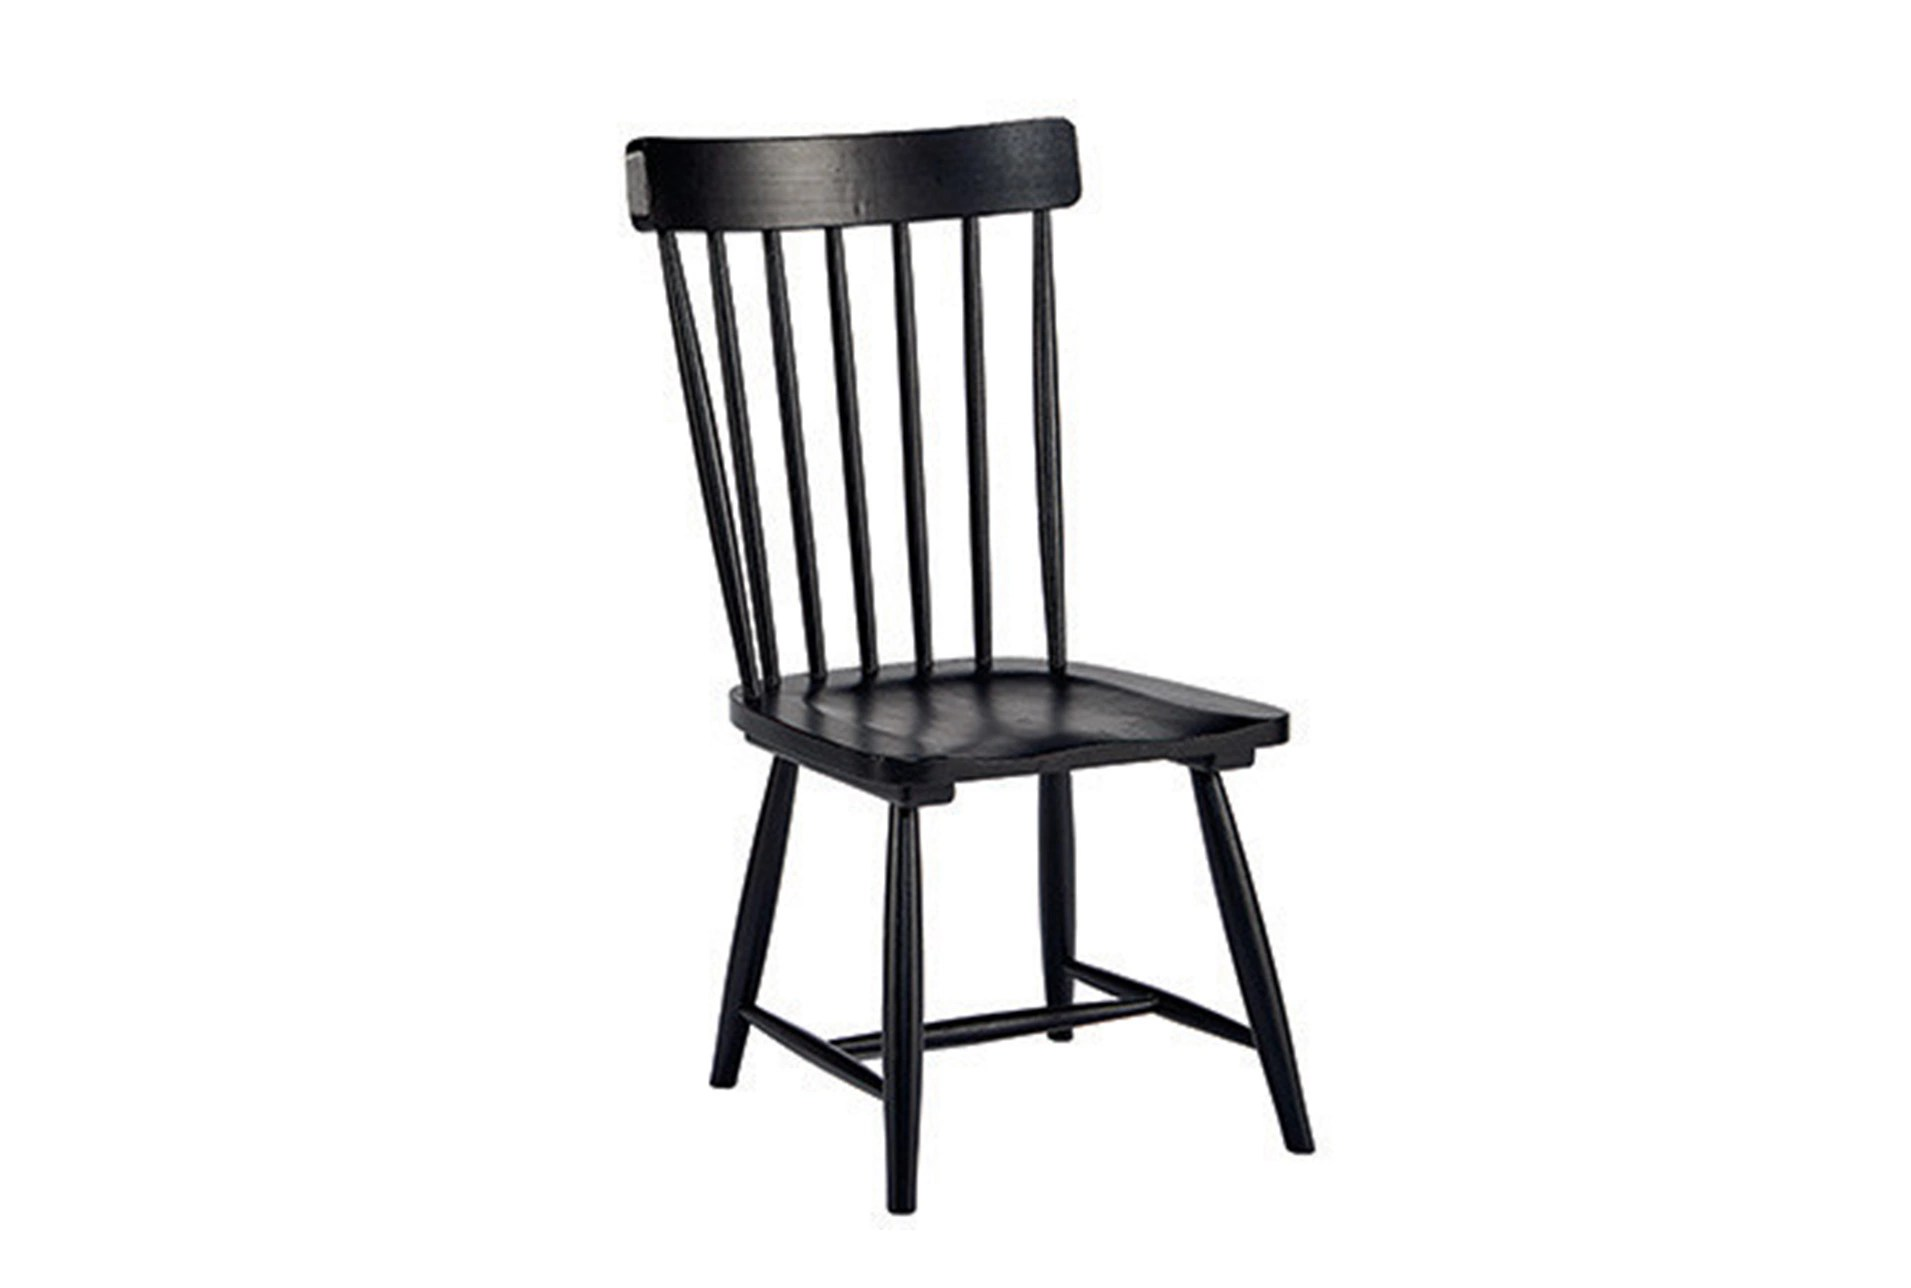 black side chair walmart bean bag chairs magnolia home spindle back by joanna gaines living spaces qty 1 has been successfully added to your cart